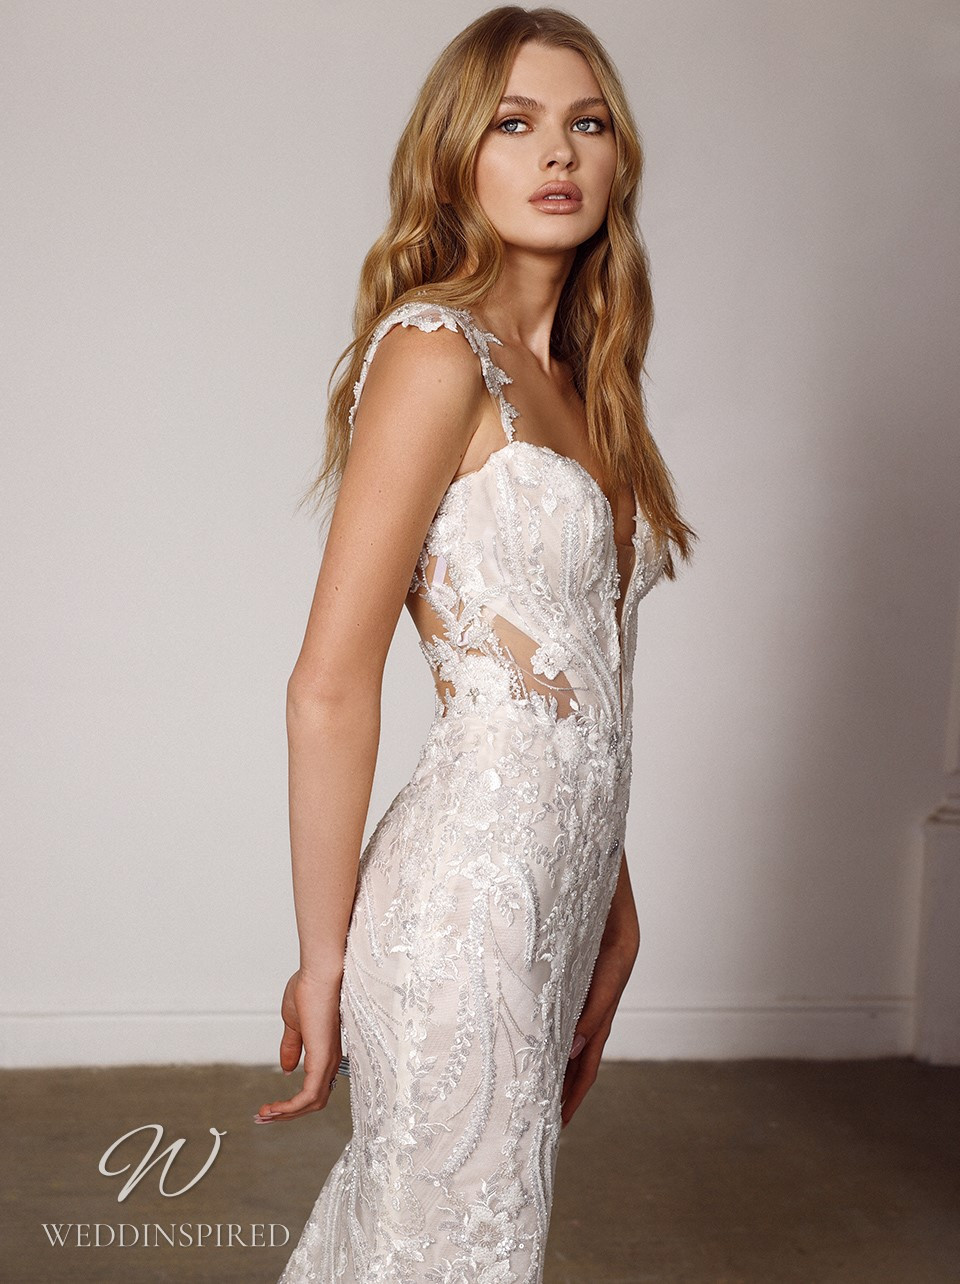 A Galia Lahav 2022 lace and tulle mermaid wedding dress with straps